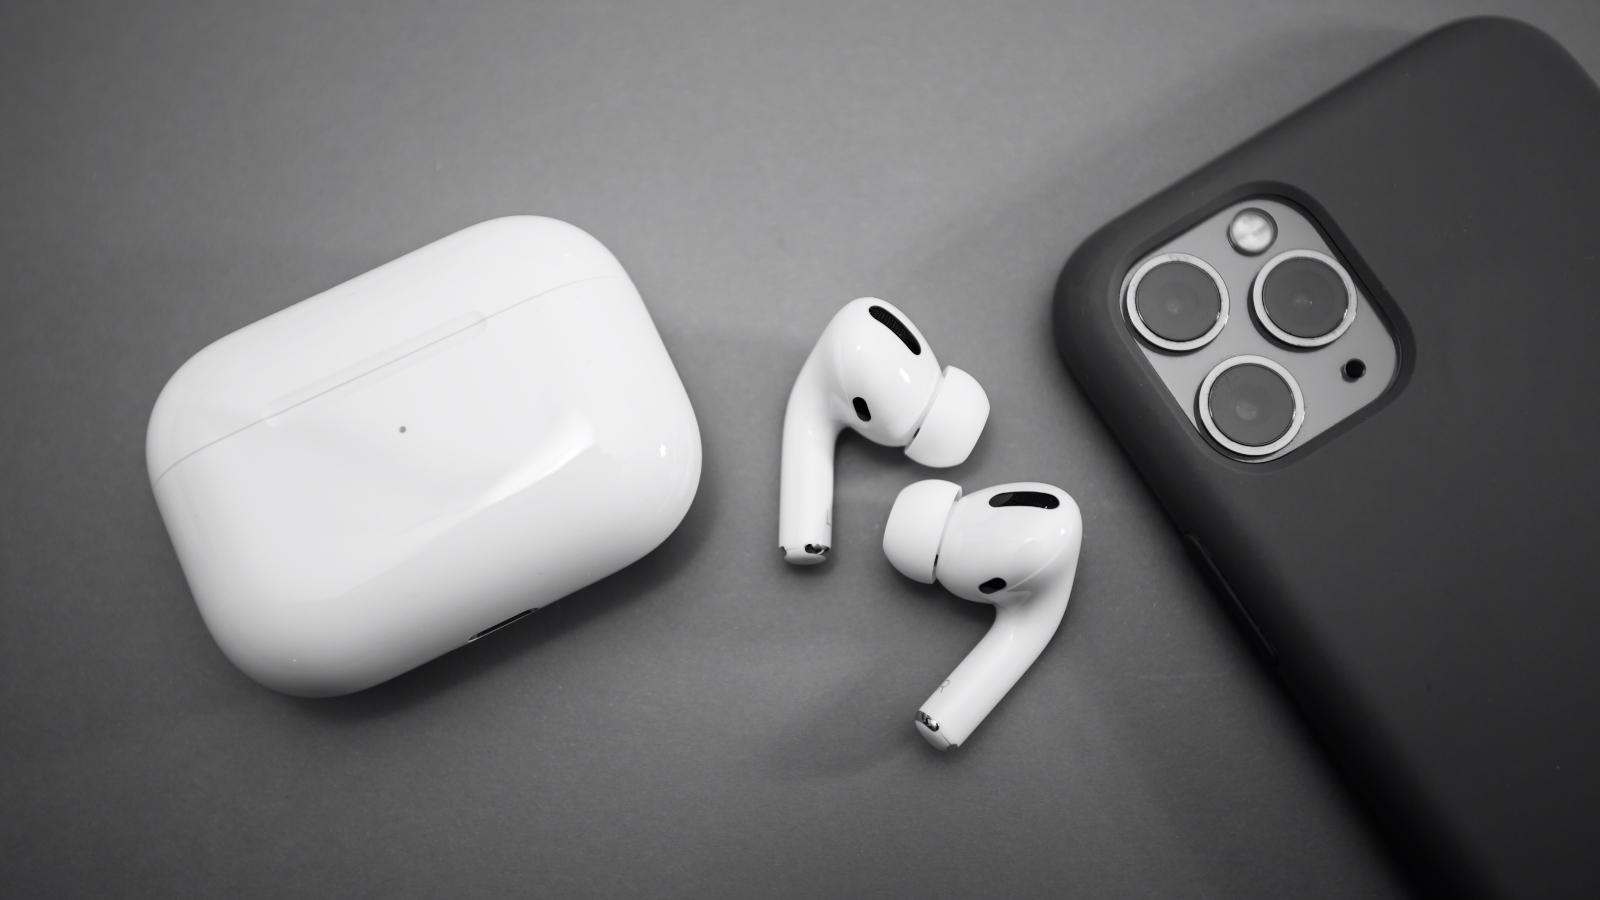 Among other news about iOS 14, iPadOS 14, and watchOS 7, Apple showed some love for the AirPods during WWDC, and they have actually announced some pre